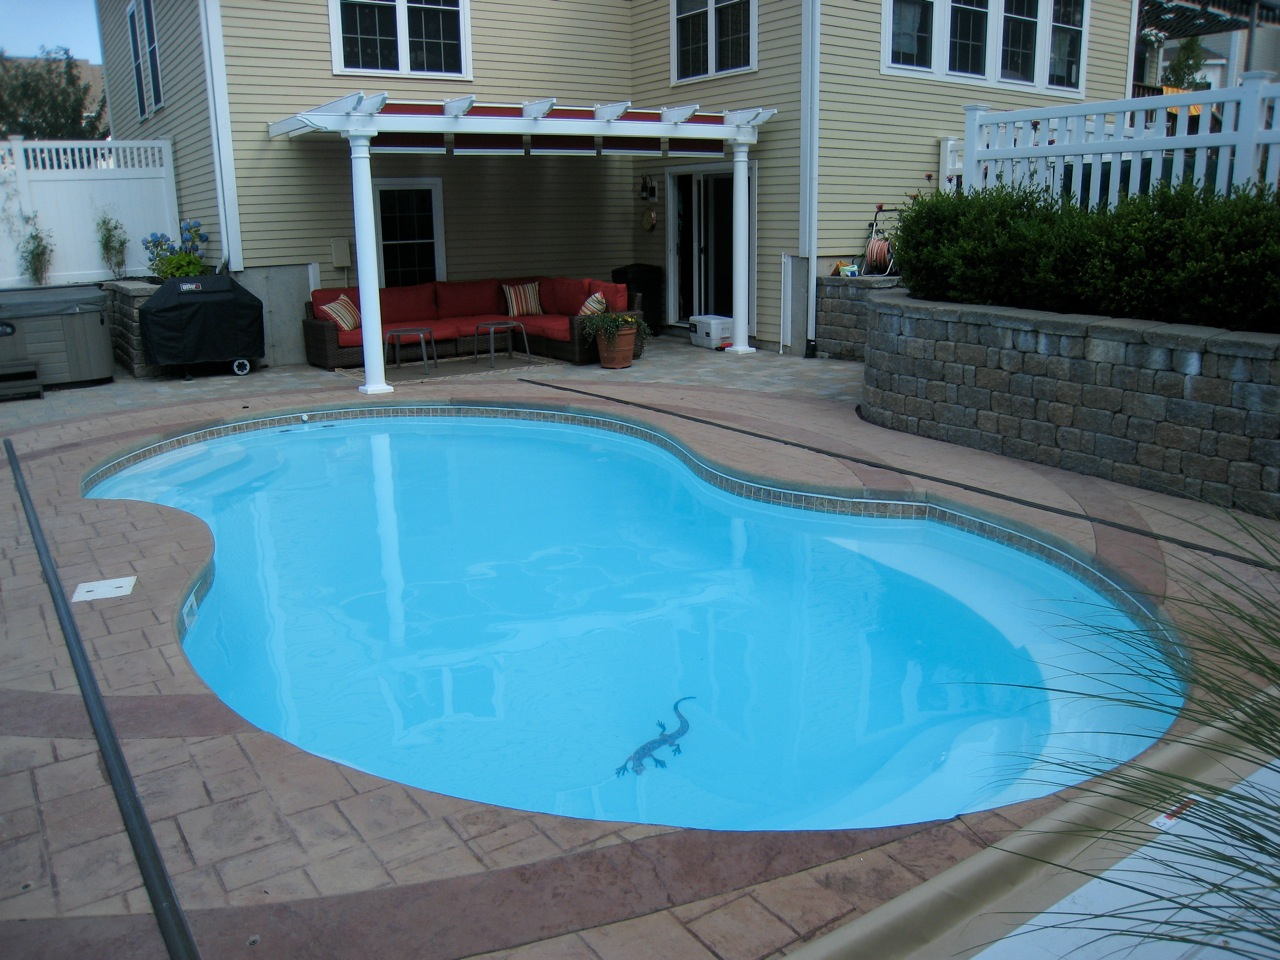 Fiberglass Pool Contractor Surfside Pool Co Fitchburg Ma